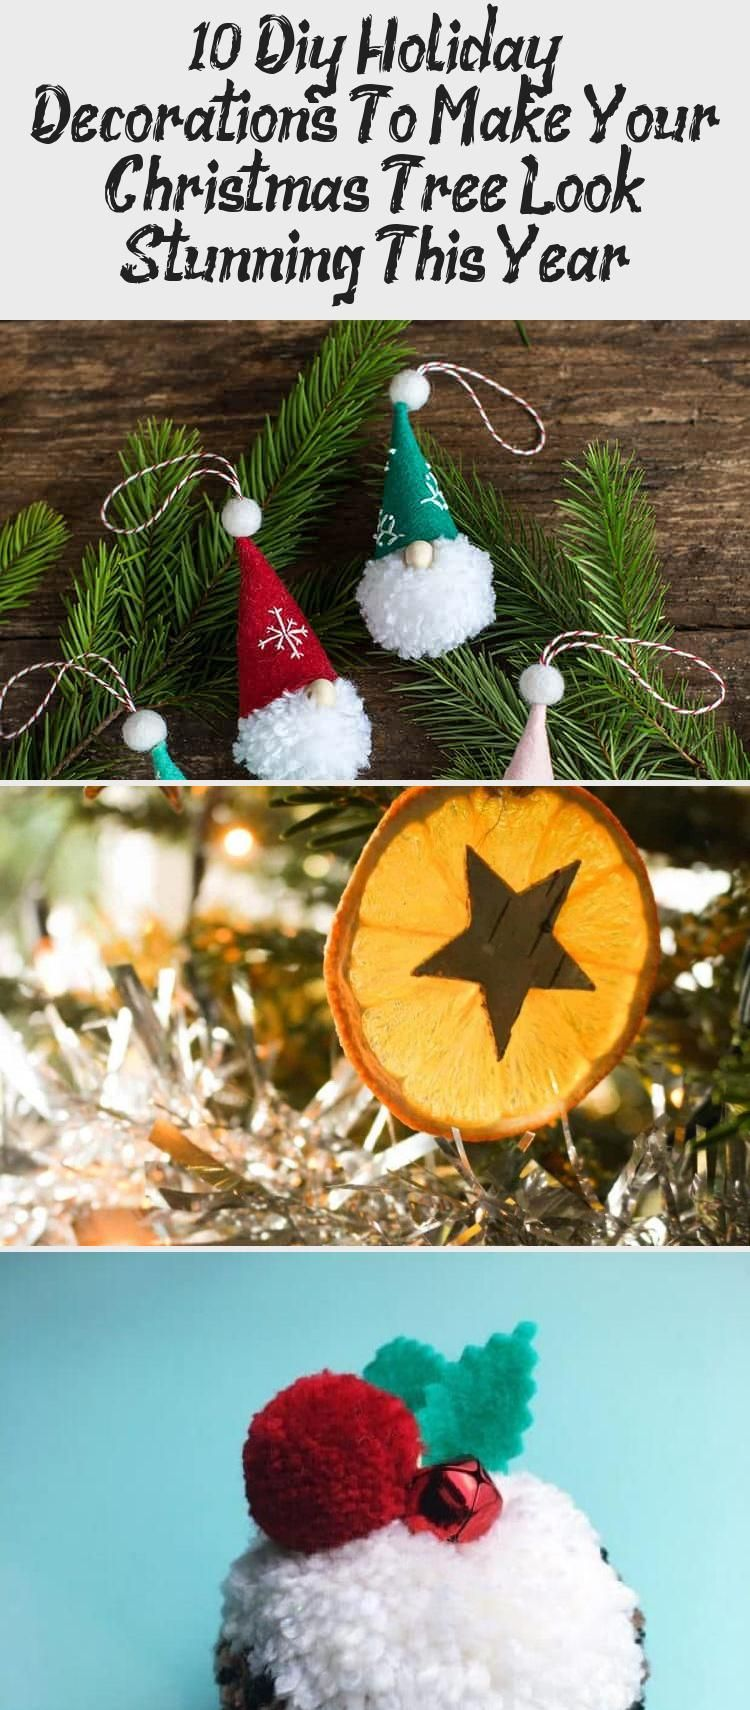 10 Diy Holiday Decorations That Will Make Your Christmas Tree Look Stunning This Year The Best In 2020 Diy Holiday Decor Diy Holiday Handmade Christmas Decorations